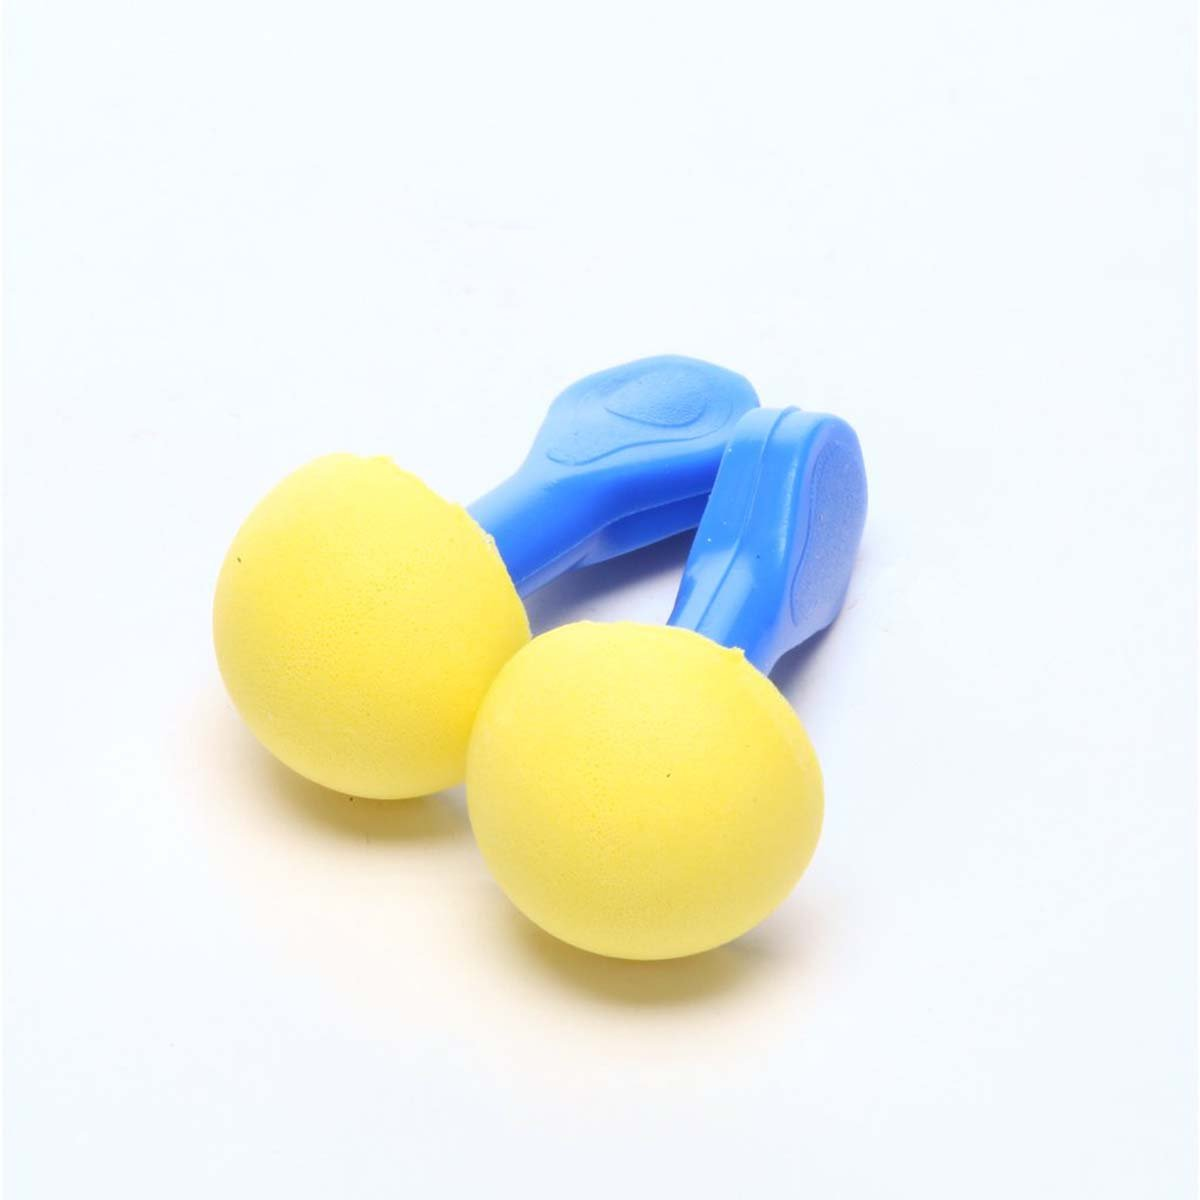 321-2200 Express Pod Uncorded Earplugs with Assorted Colored Grips E-A-R® by 3MTM 10080529210118